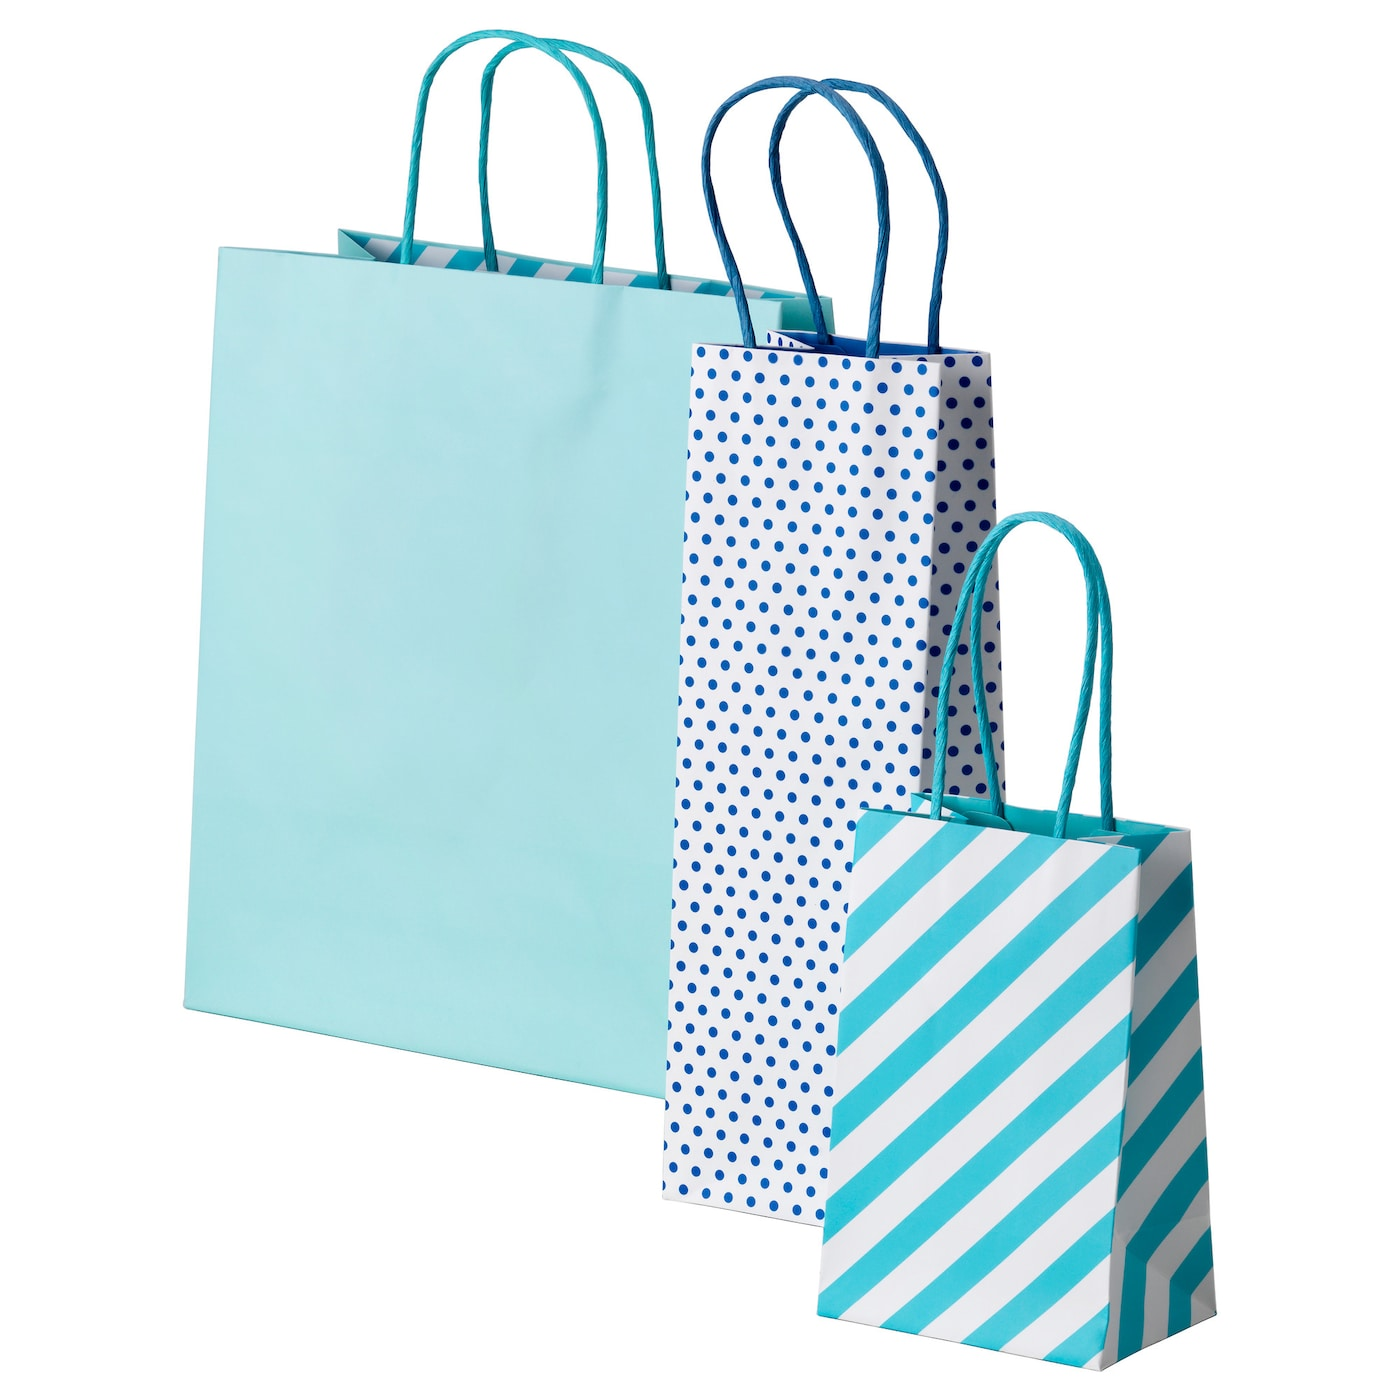 IKEA FRAMSTÄLLA gift bag, set of 3